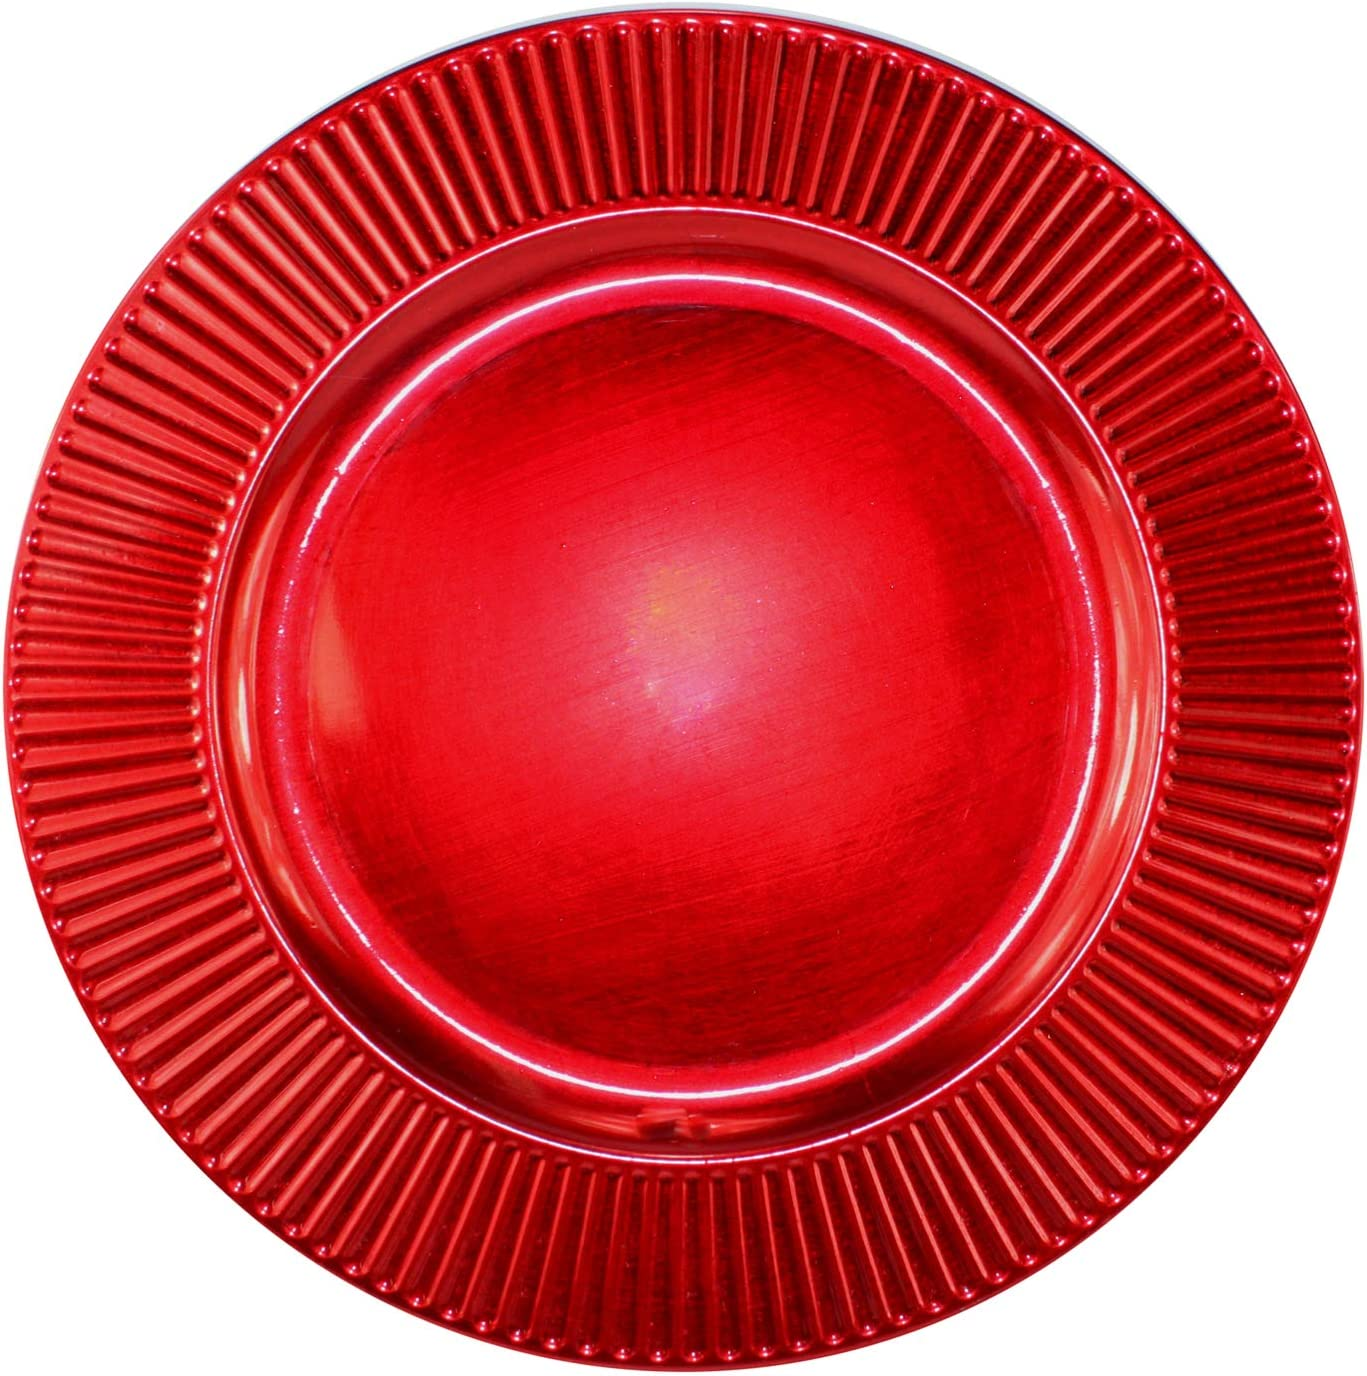 Decorative Red Very Max 67% OFF popular Plate Charger